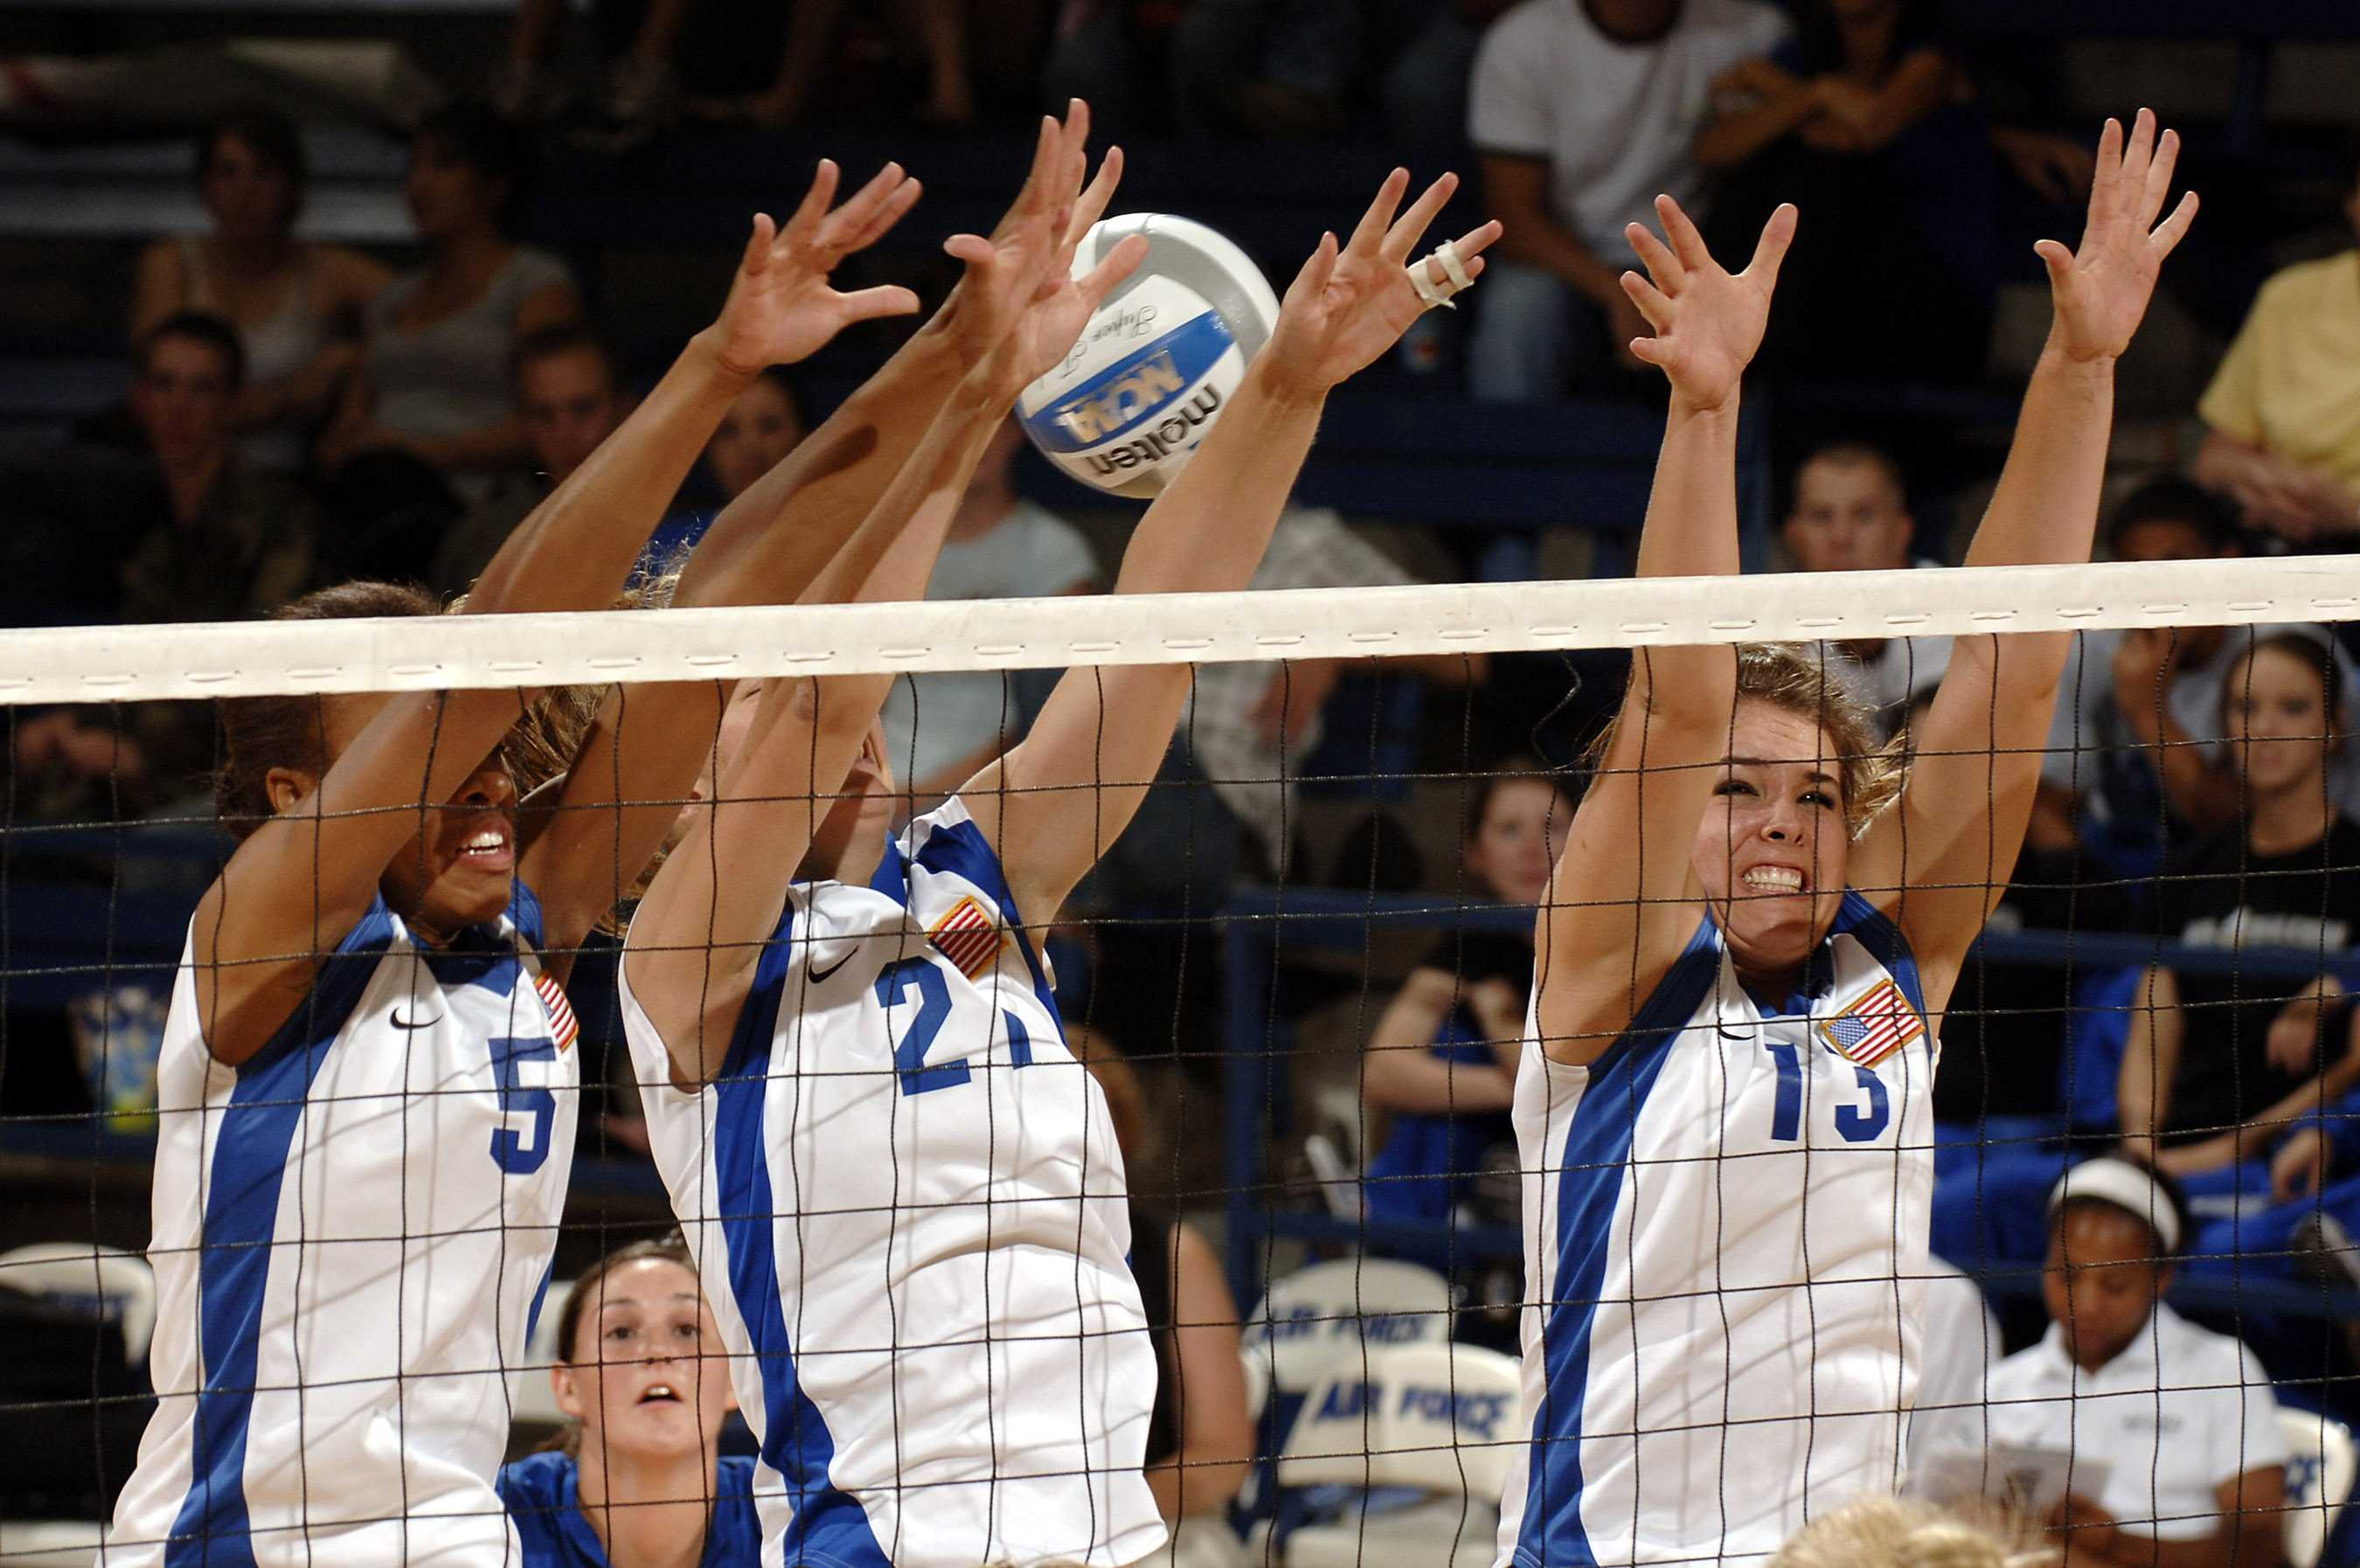 Pelvic Rehabilitation in Volleyball Players